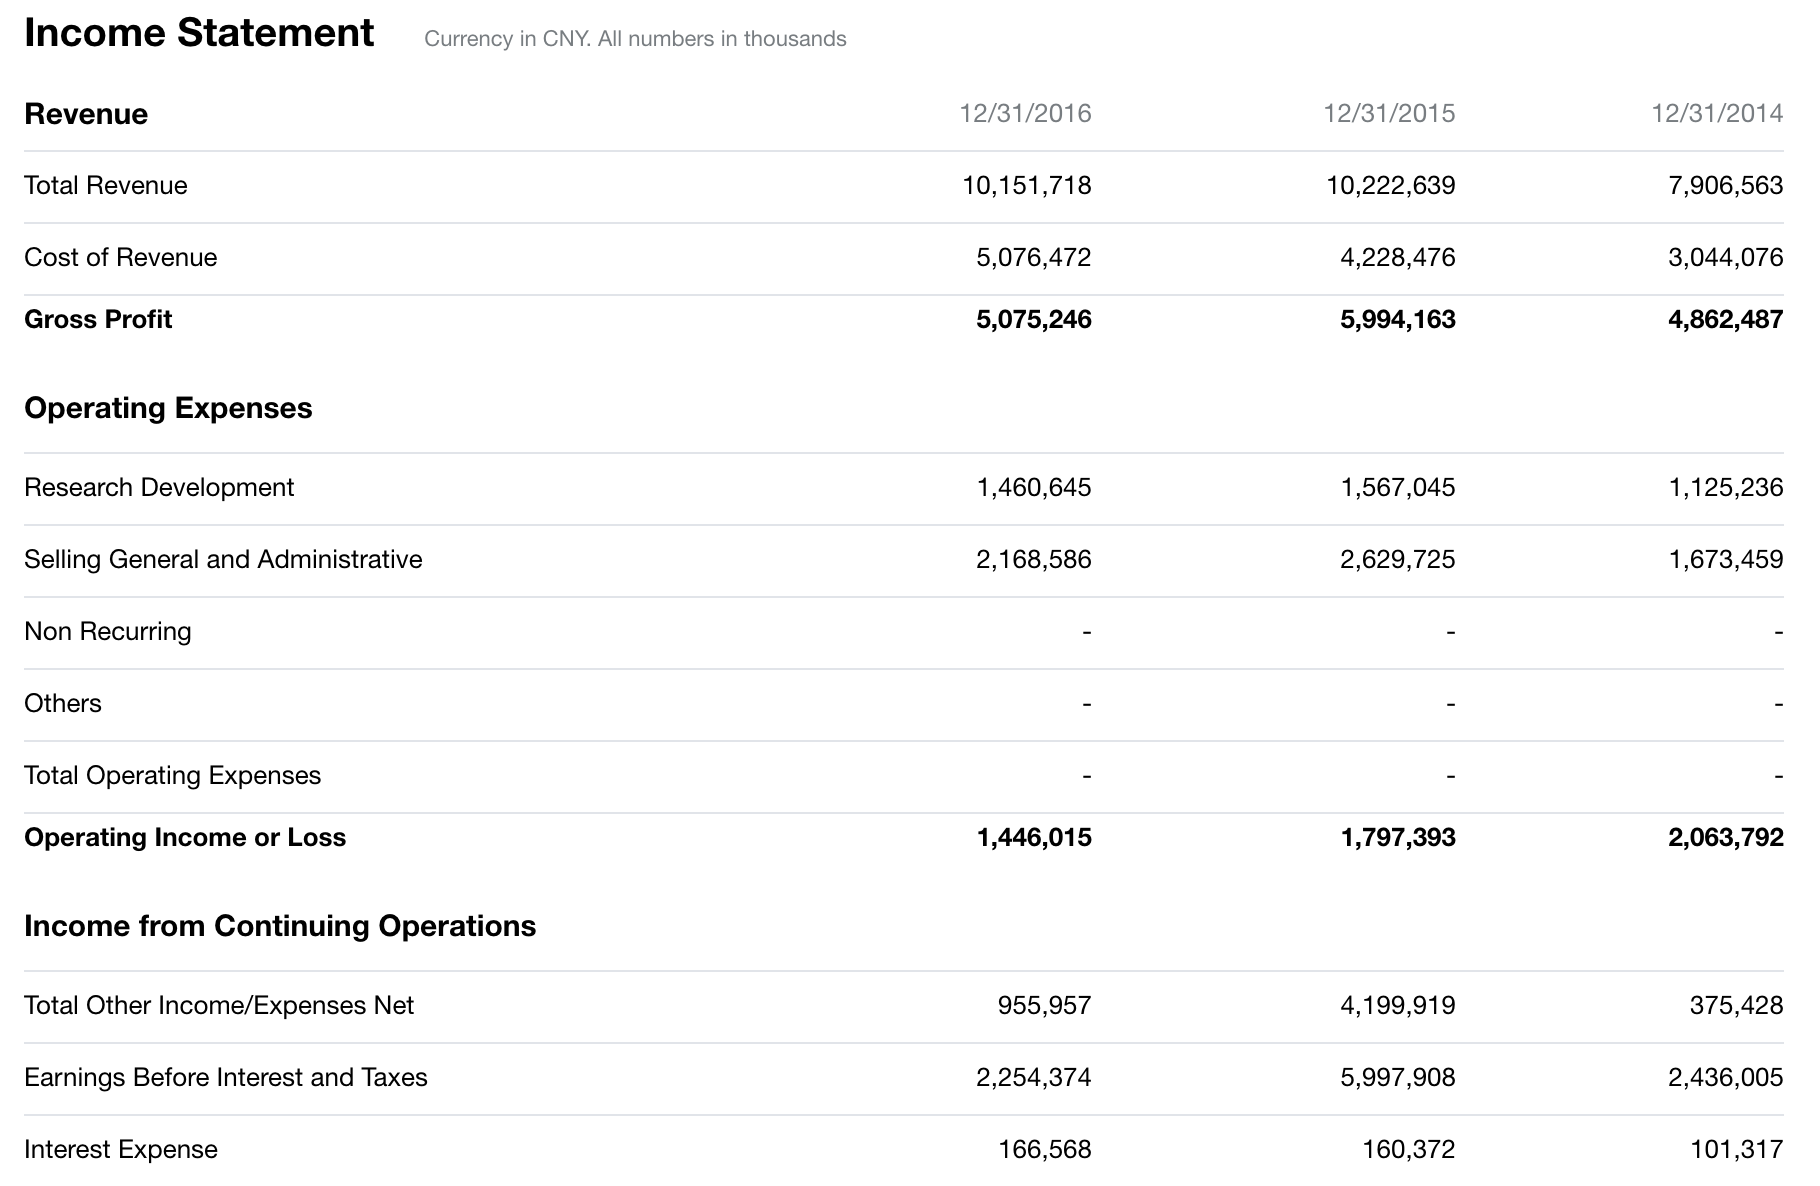 Baidu income statement